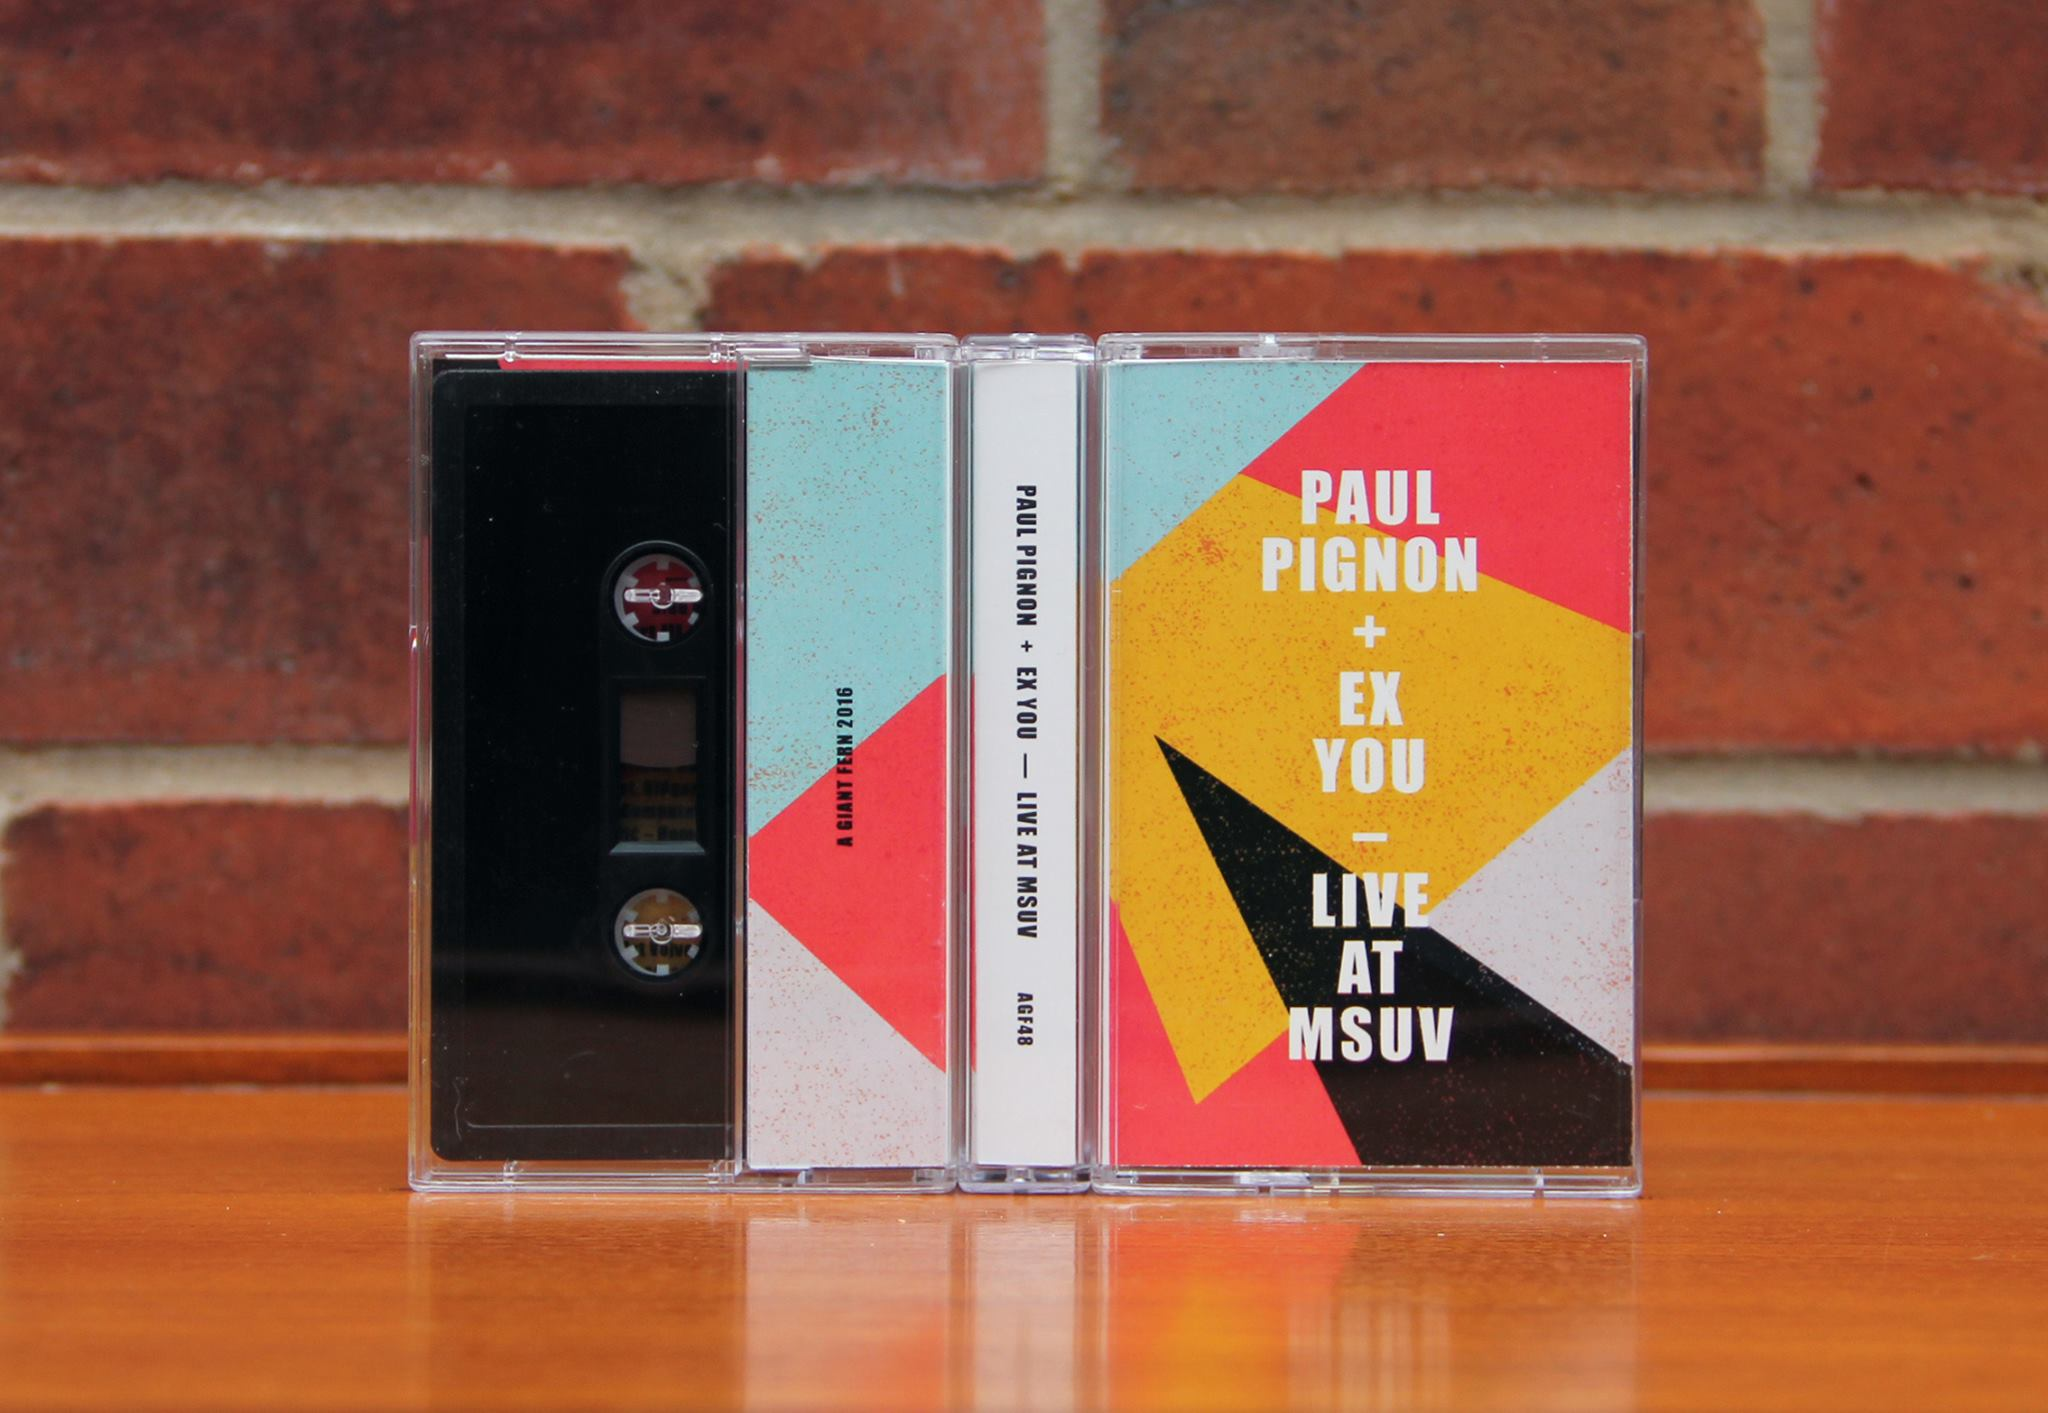 Paul Pignon & Ex You – Live at MSUV